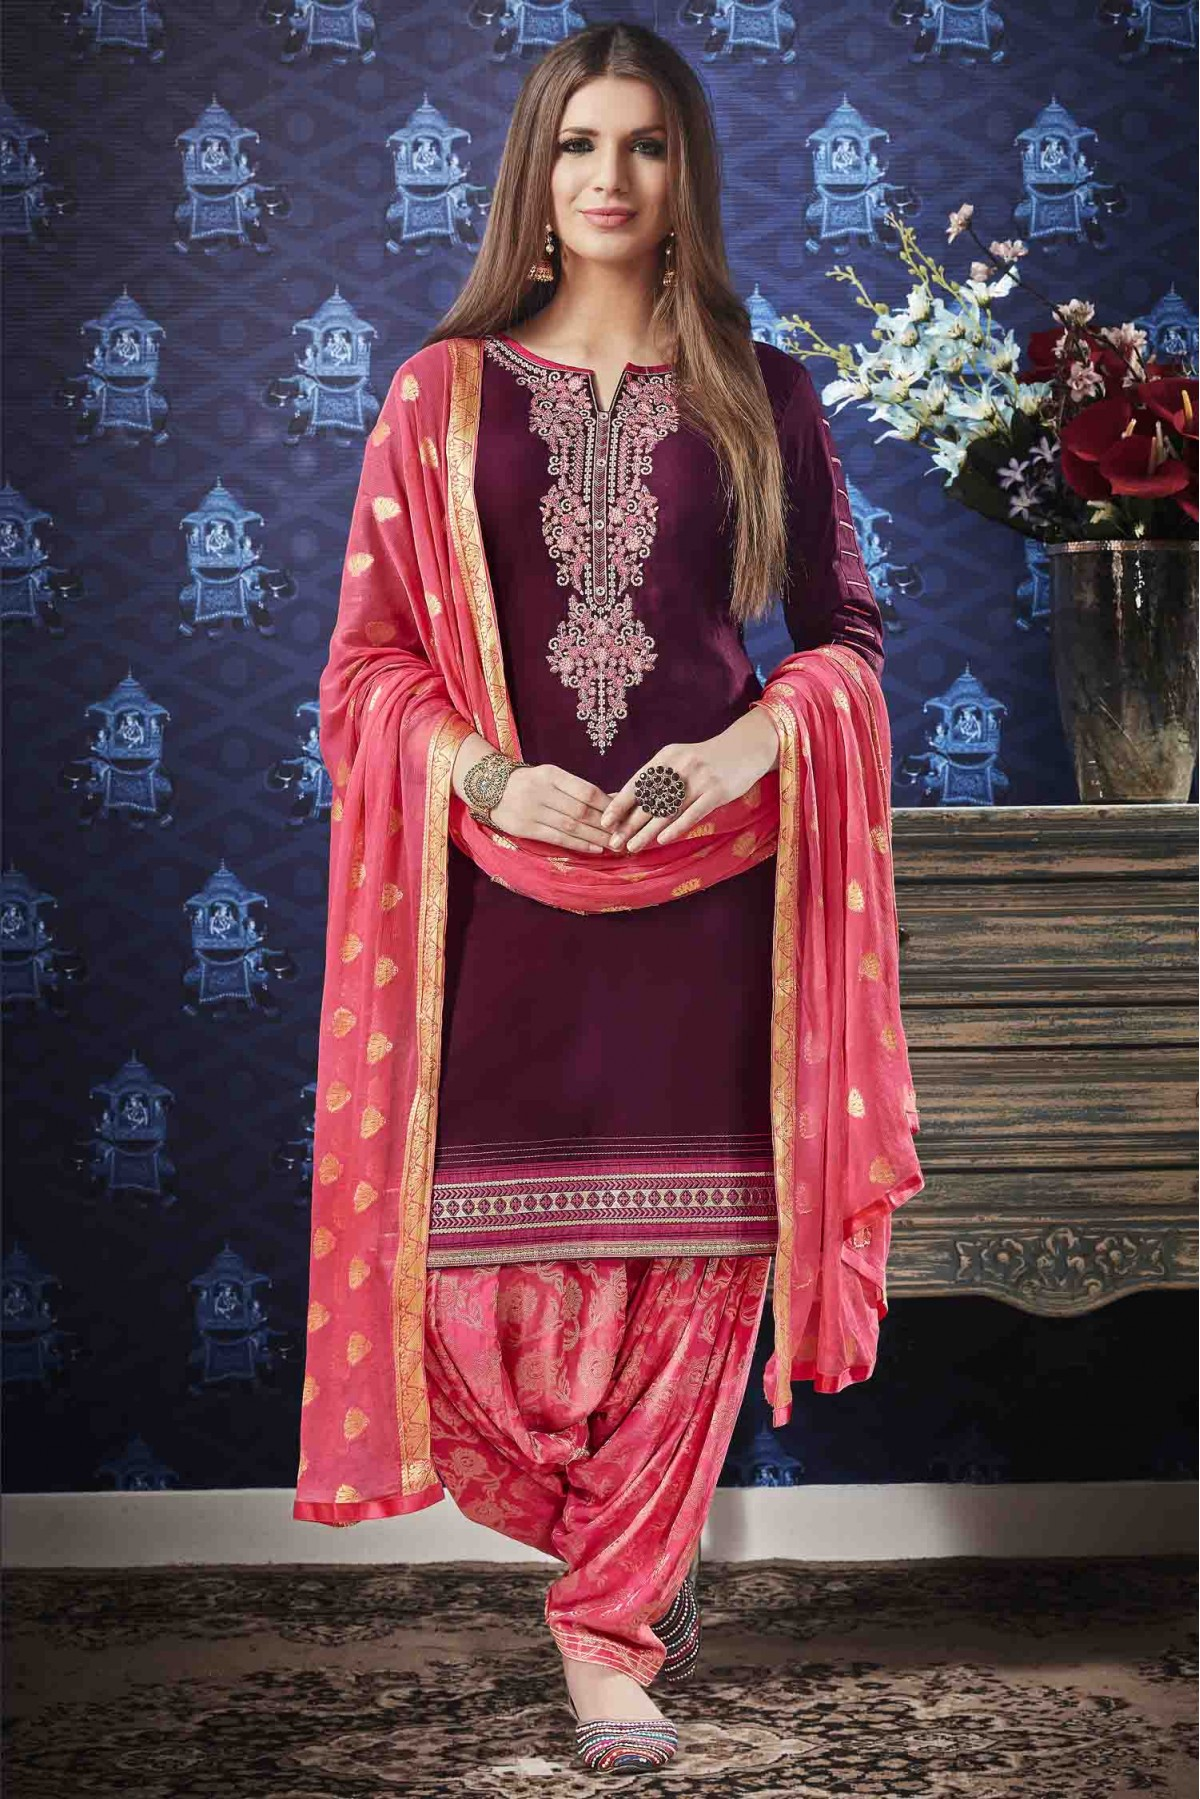 Cotton Satin Embroidery Patiala Suit In Maroon Colour